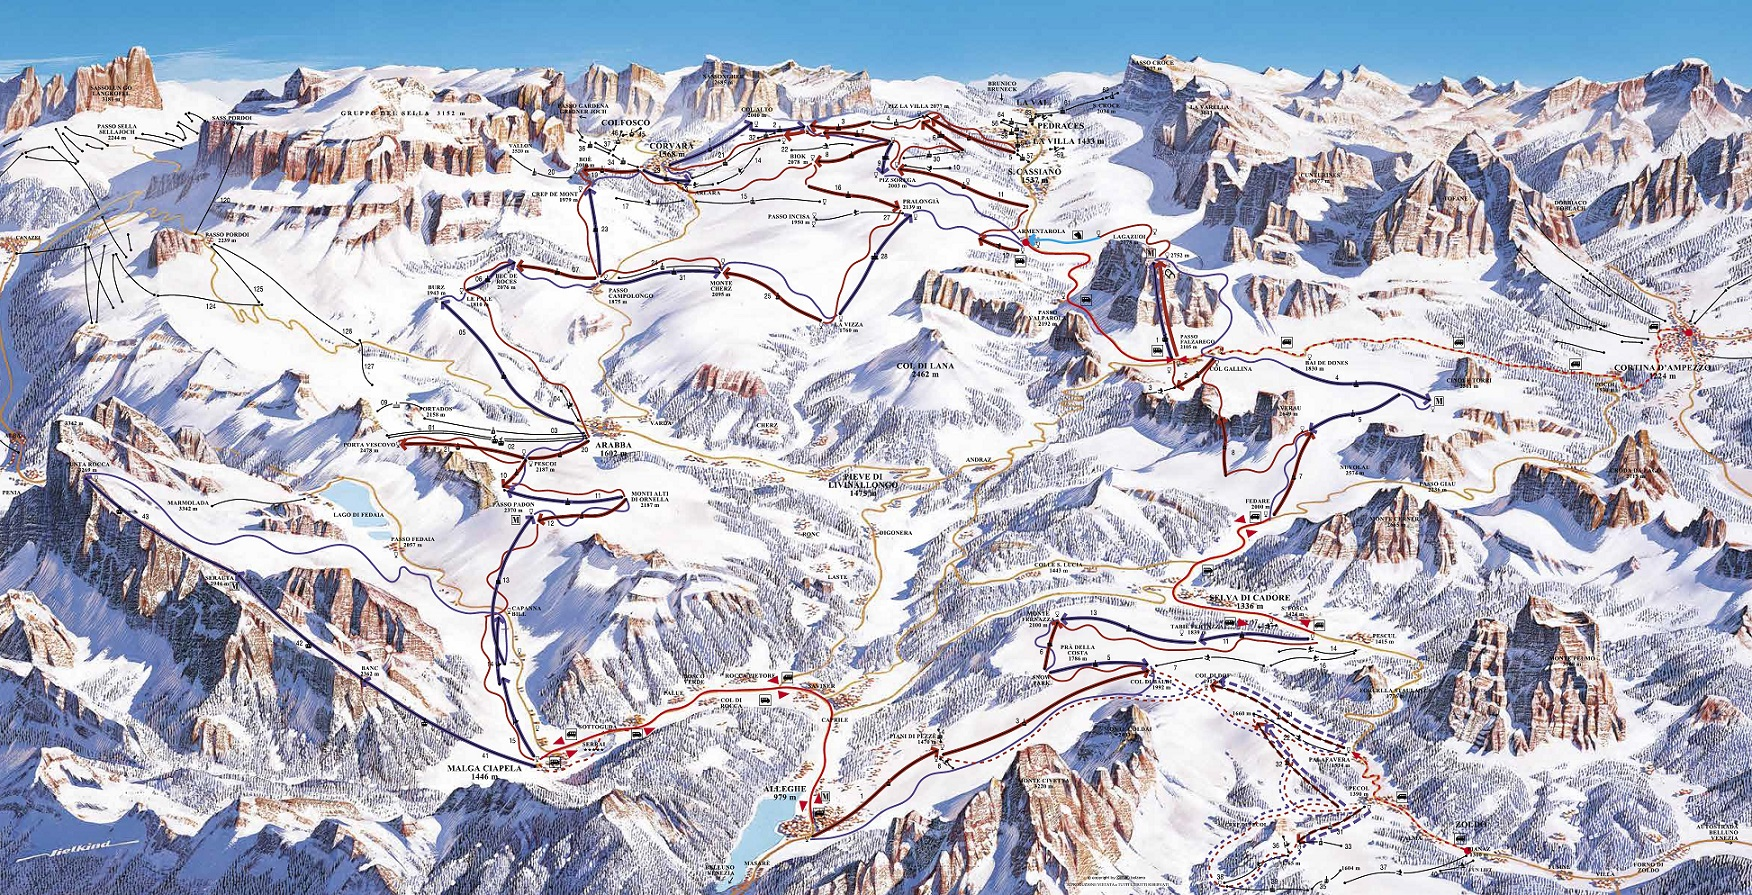 Dolomites Ski Resorts Italy Dolomites Ski Lifts Terrain Maps